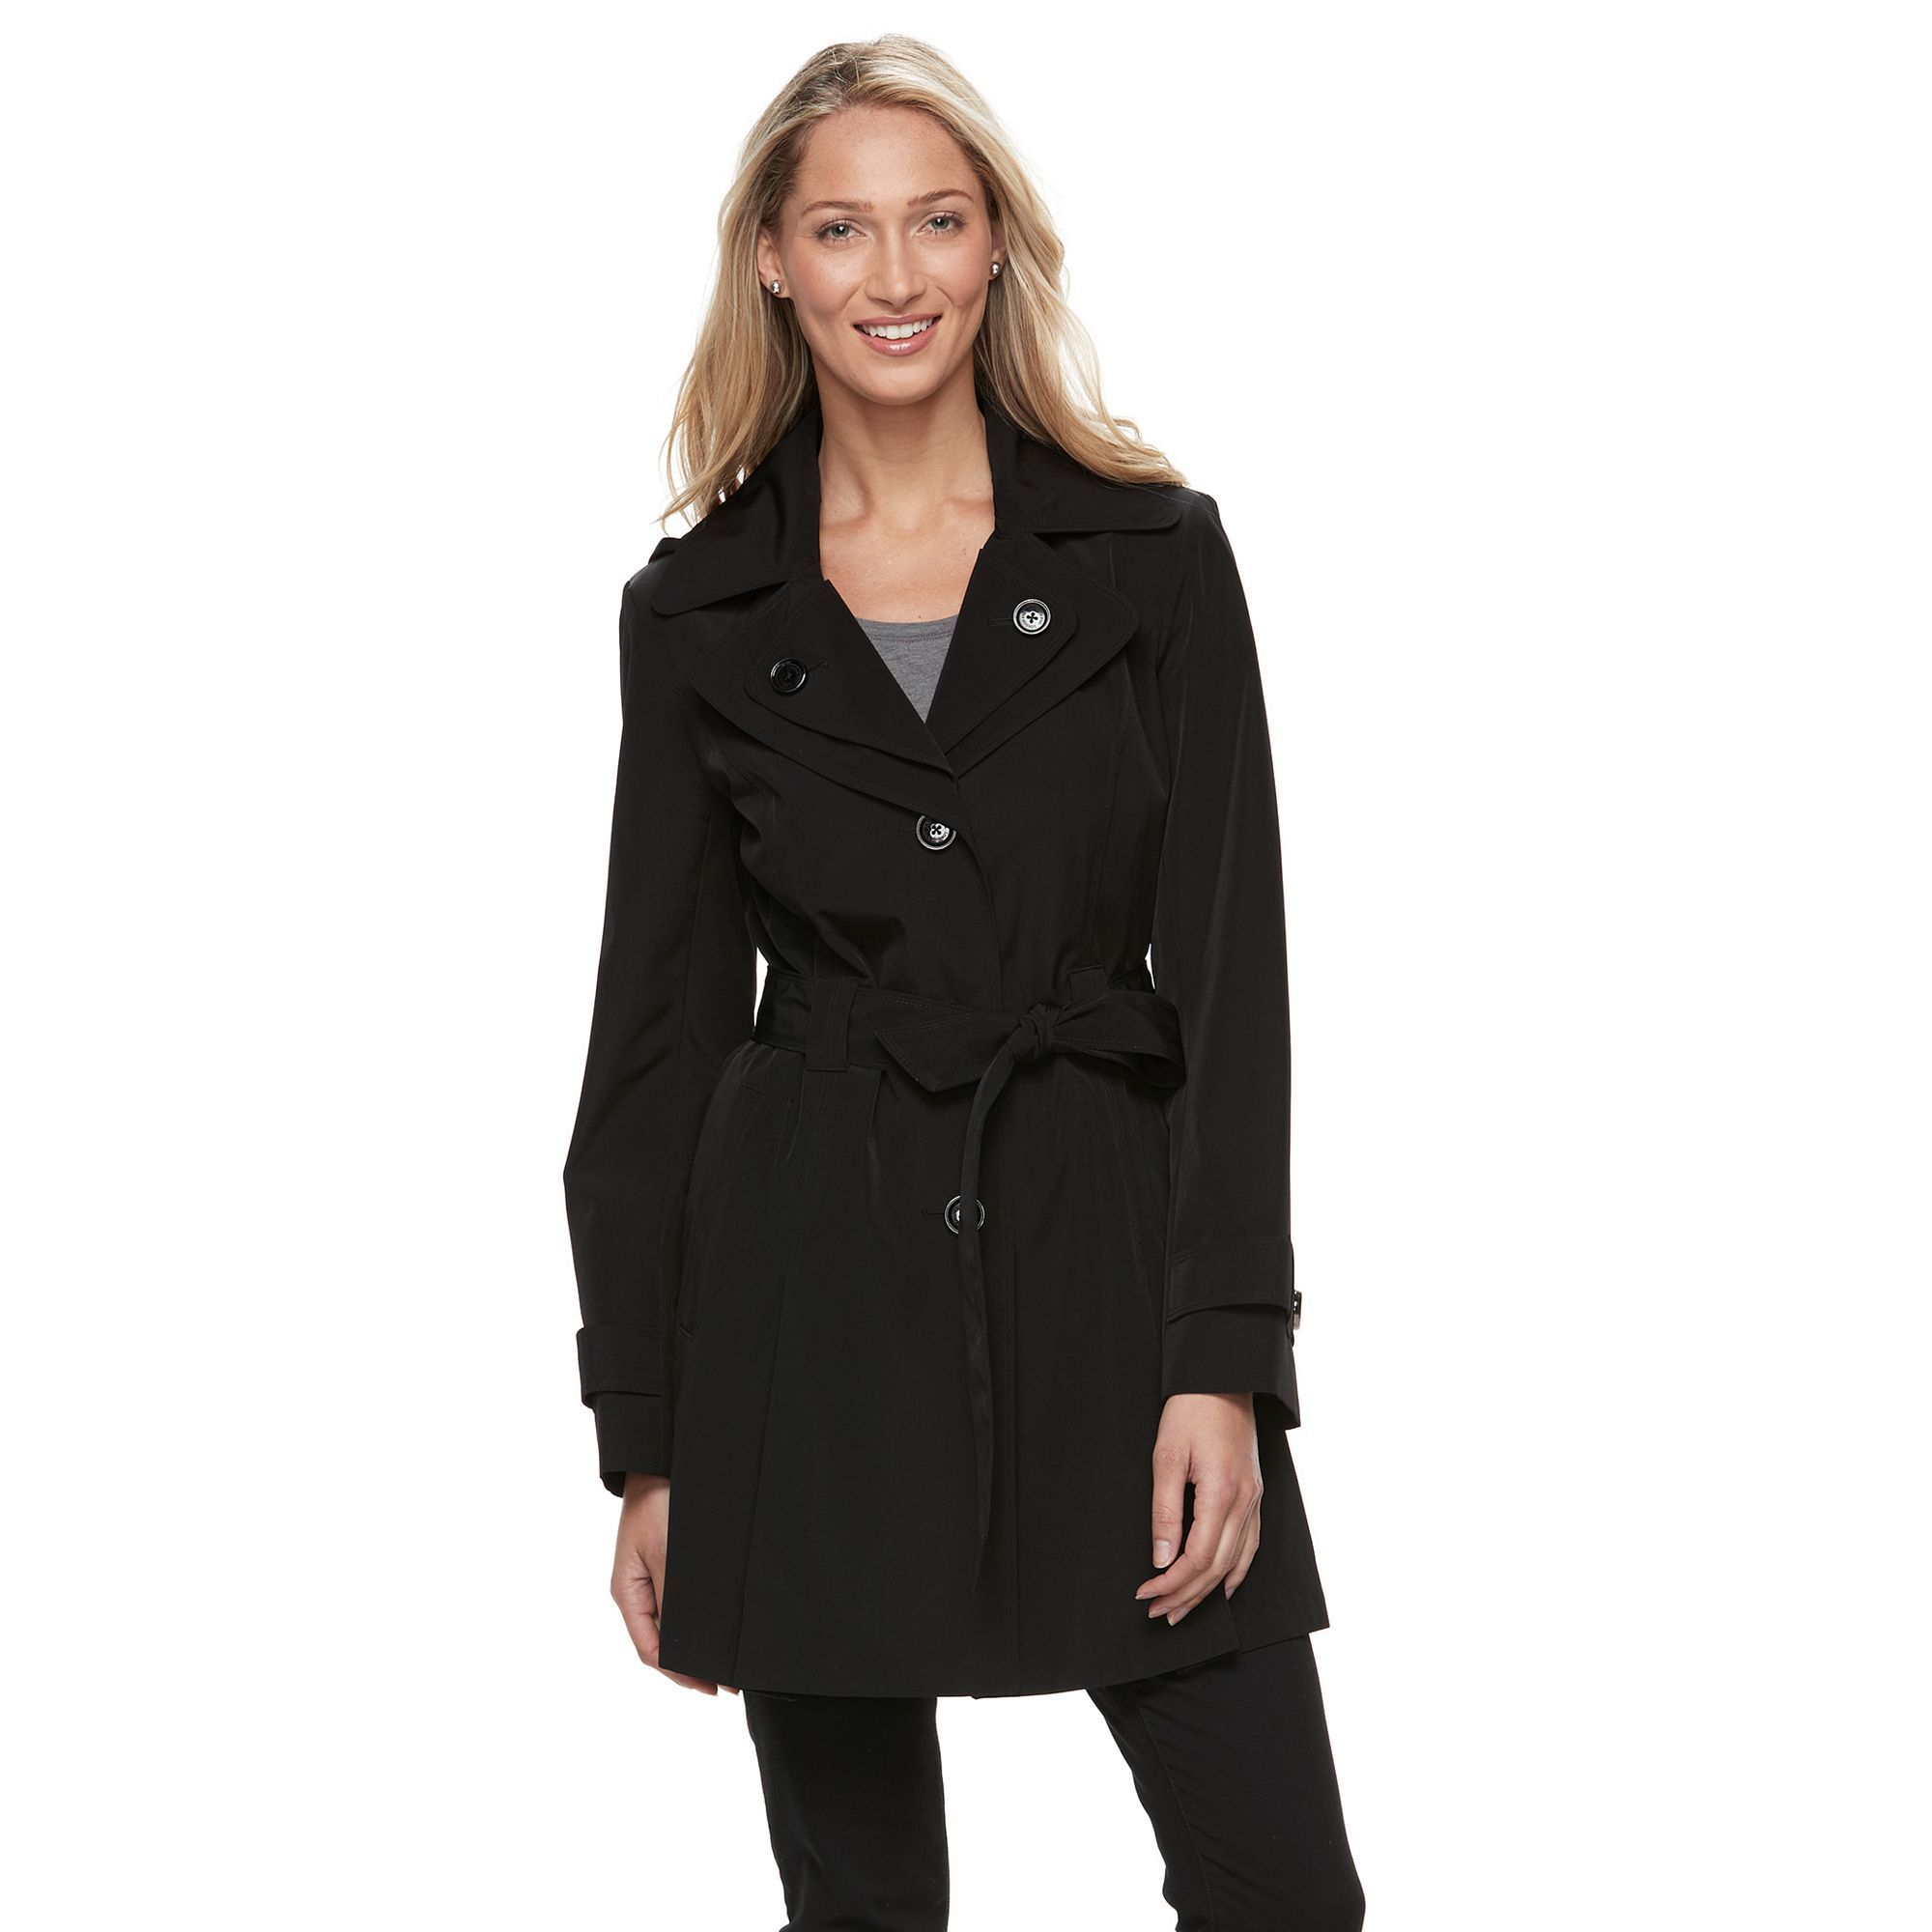 959bc7242 Women's Towne by London Fog Hooded Trench Coat | Products | Hooded ...